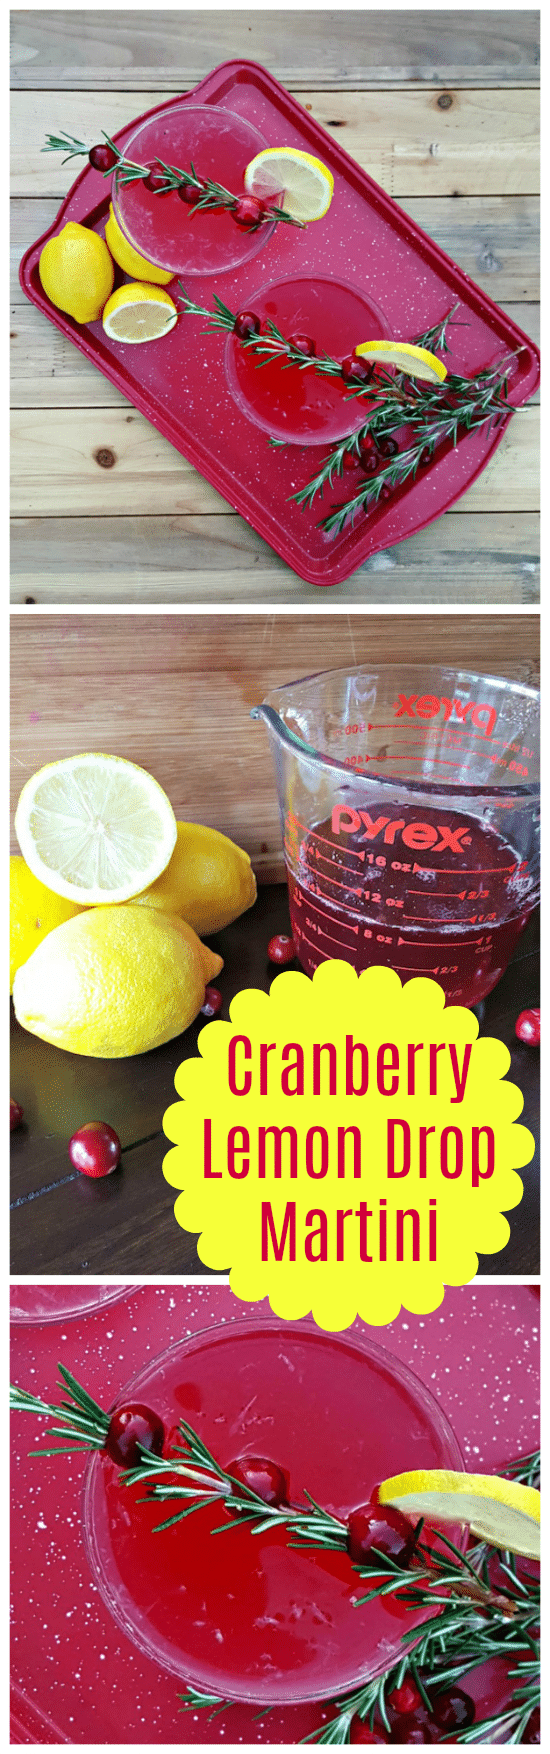 This Cranberry Lemon Drop Martini uses a homemade cranberry simple syrup that is actually simple to make using only fresh cranberries, sugar and water. Combine it with fresh lemon juice and vodka for a delicious drink. #cocktails #martini #mixeddrinks #beverages